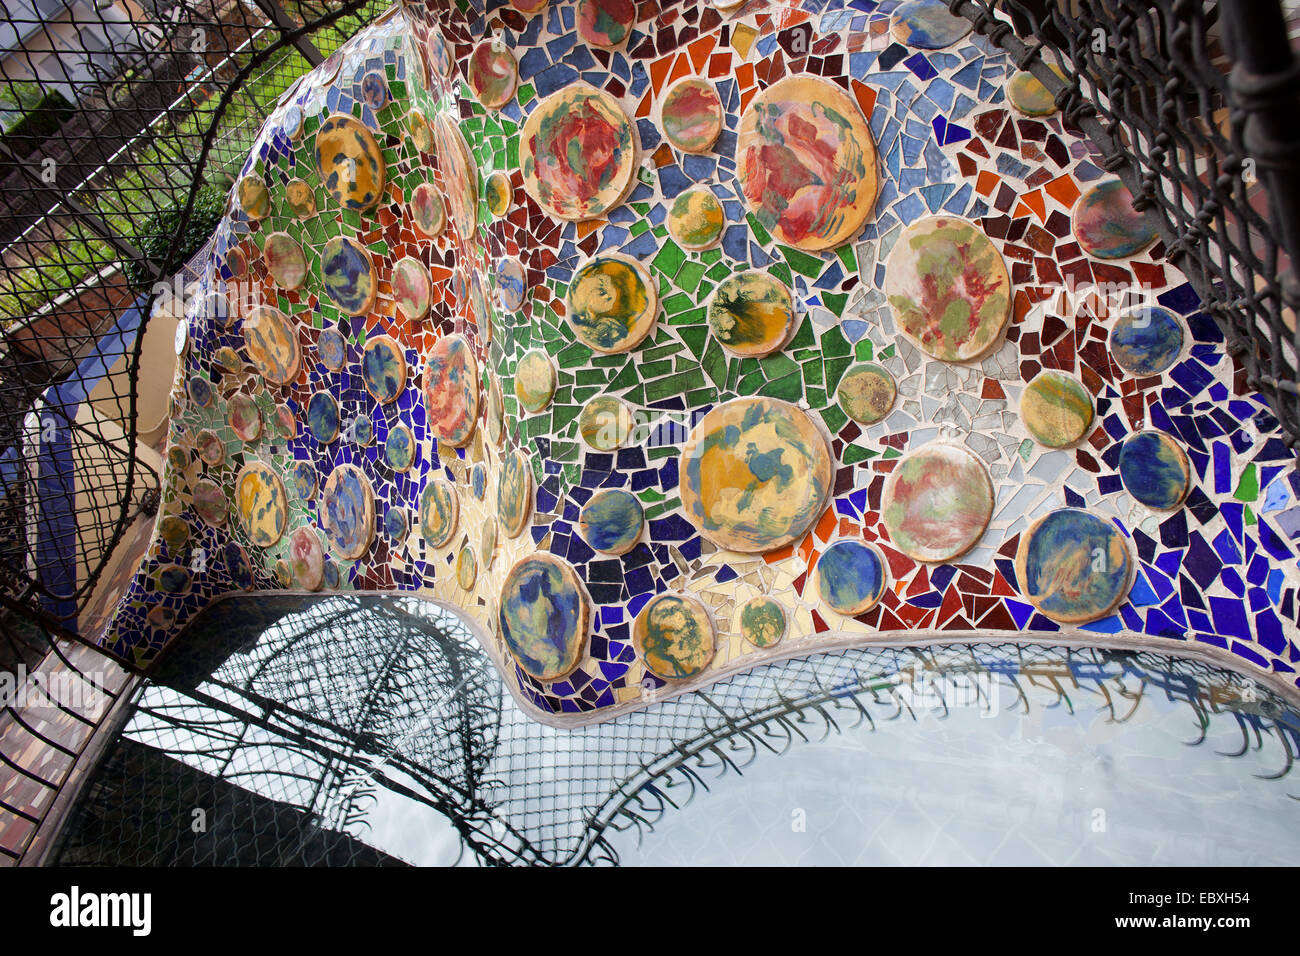 Trencadis Mosaic From Broken Tile Shards On The Terrace Of